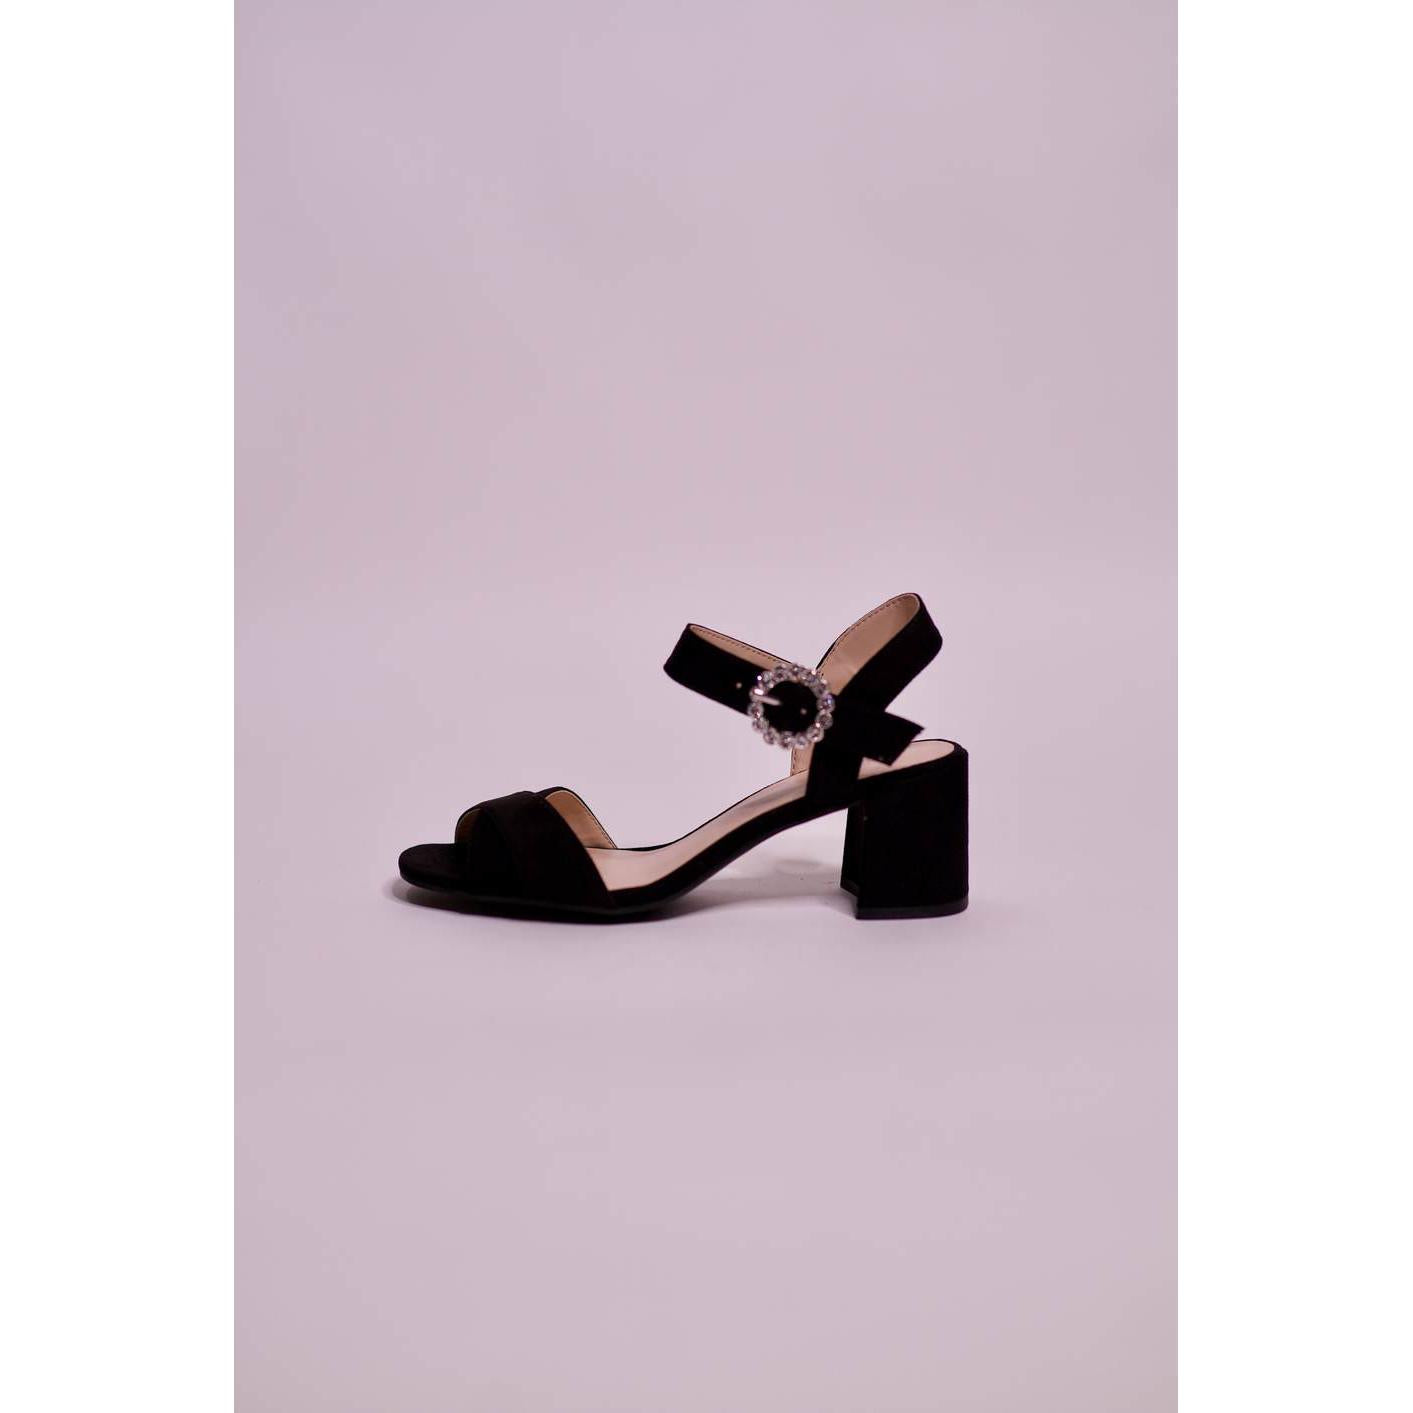 Parfois Fashion Buckle High Sandal - The HiO Life